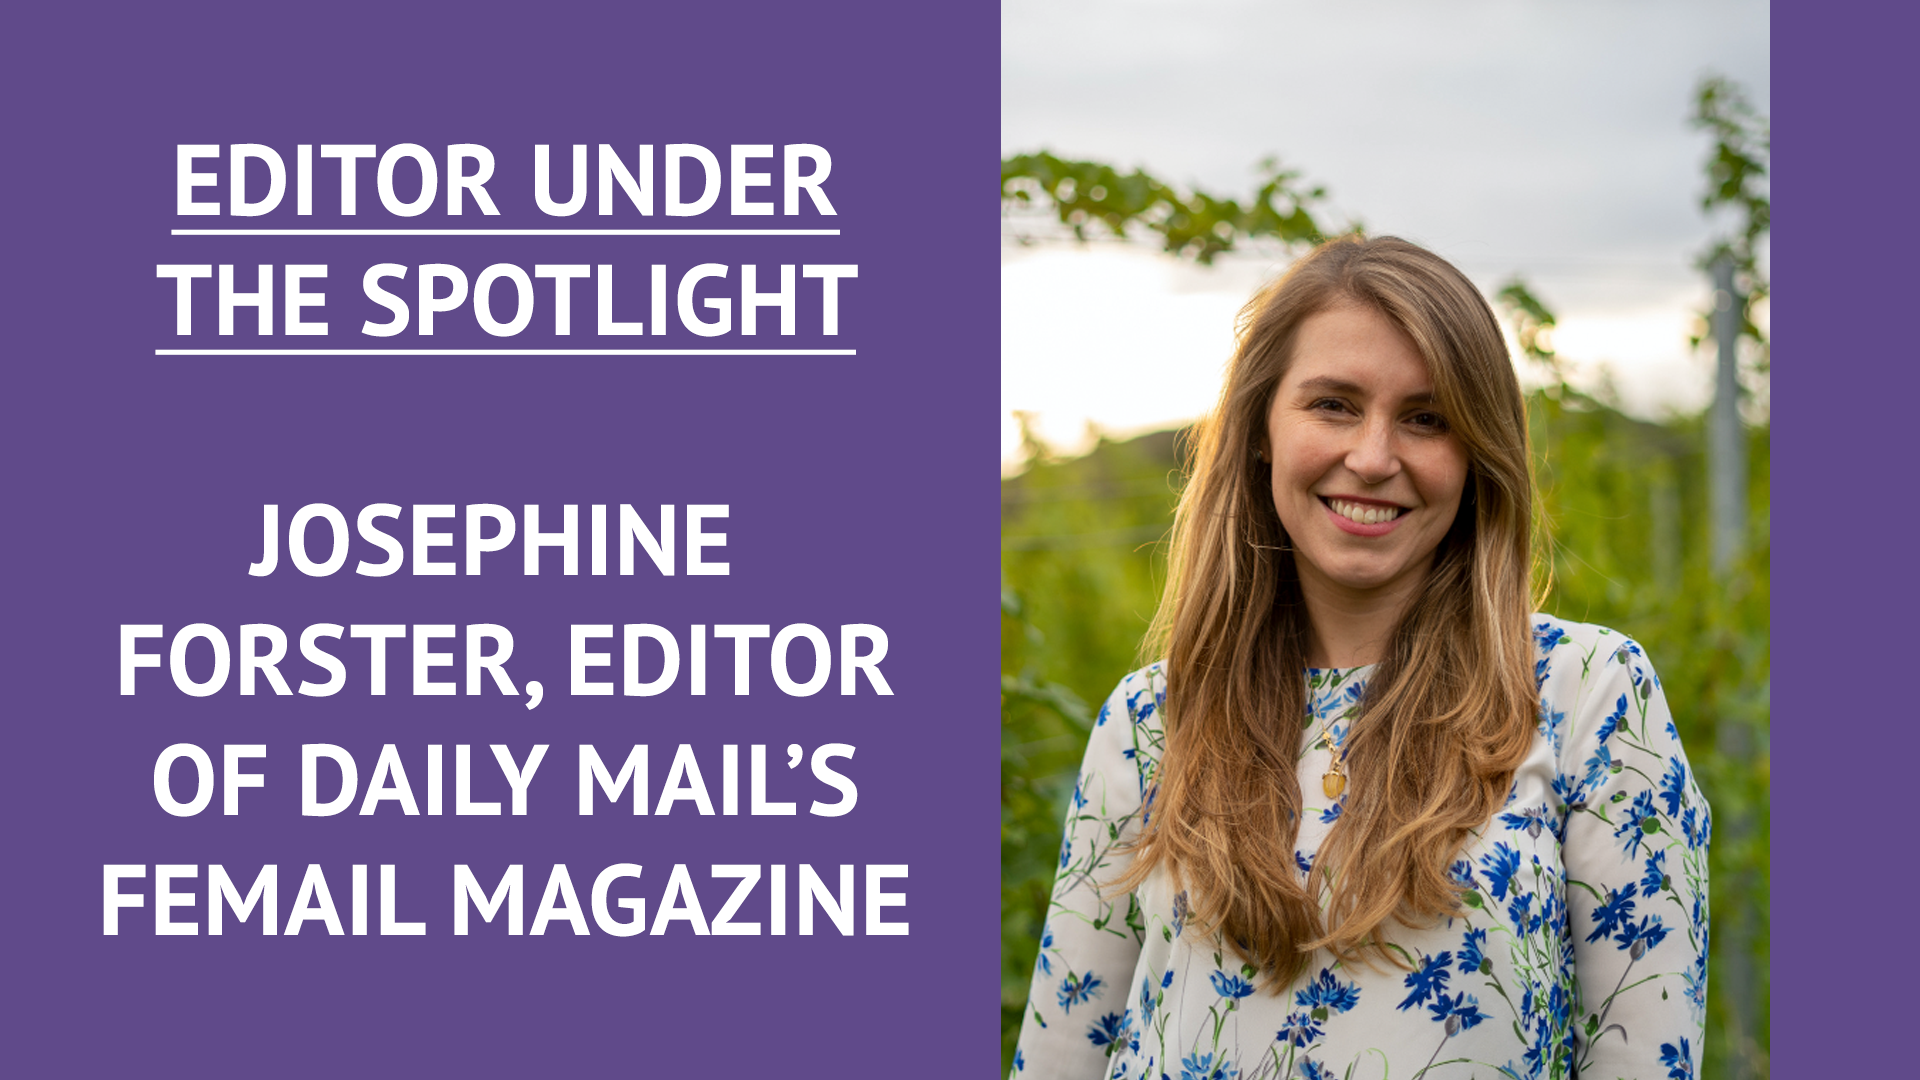 Editor Under the Spotlight: Opportunity Returns With £750 Daily Mail Commission